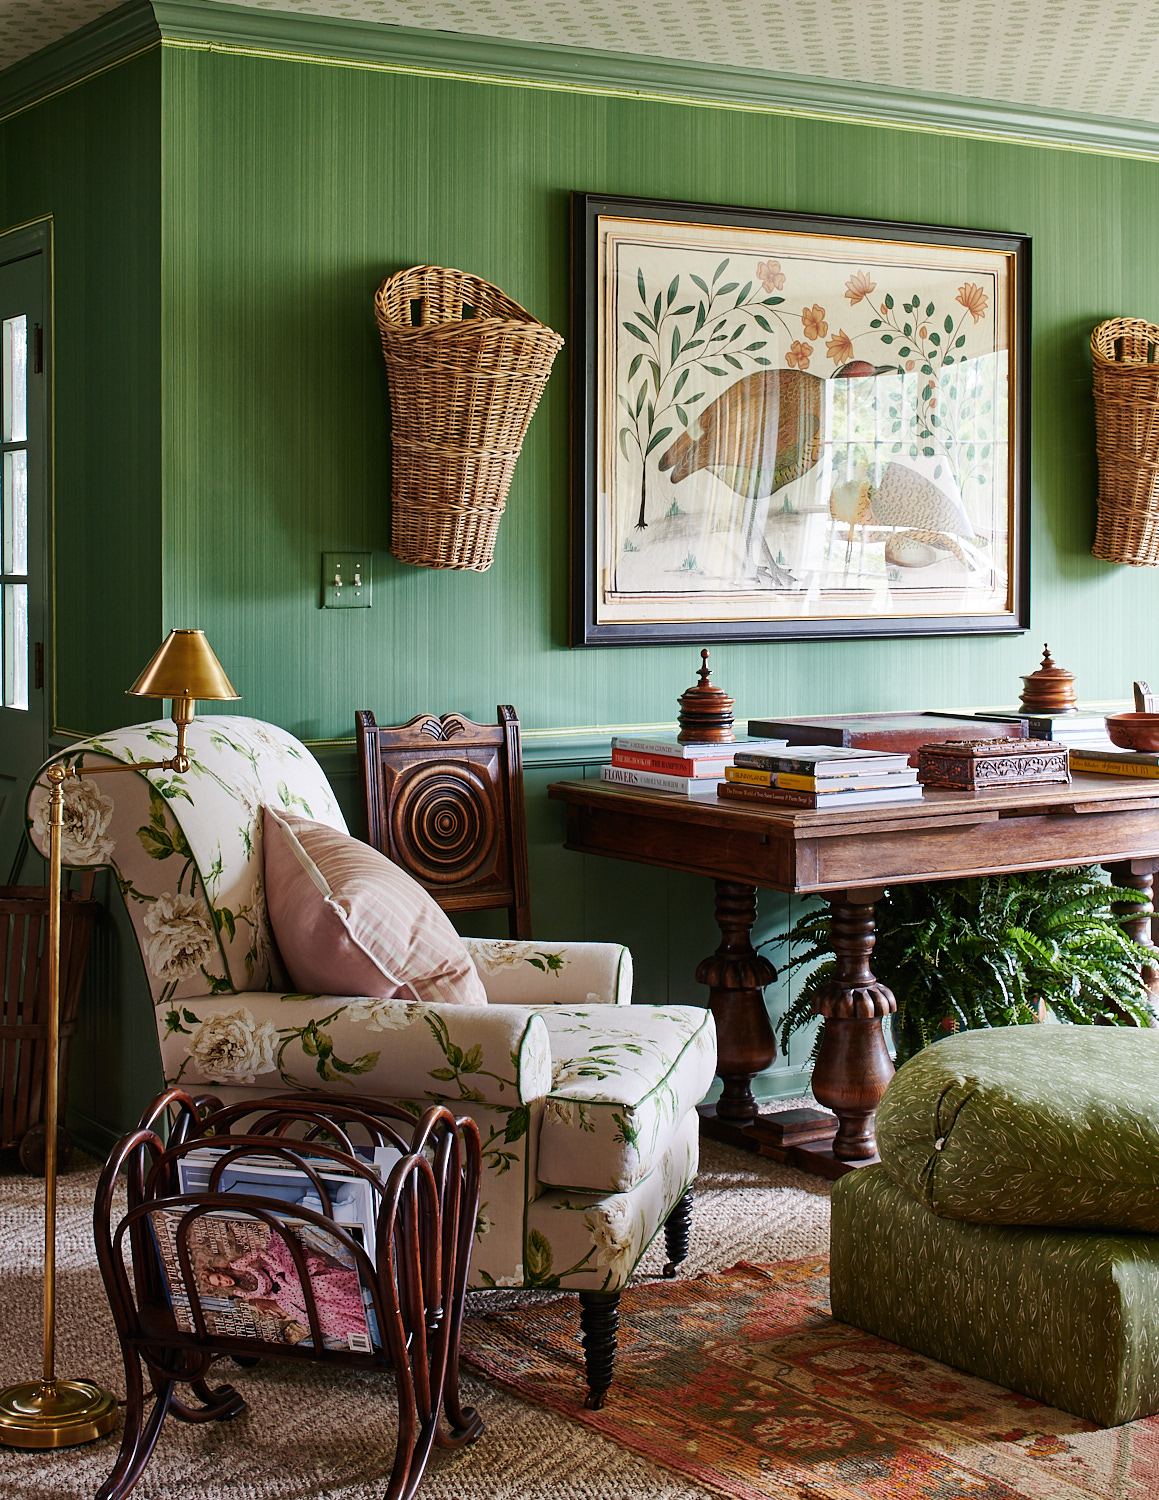 Floral upholstered chair and side-tufted ottoman